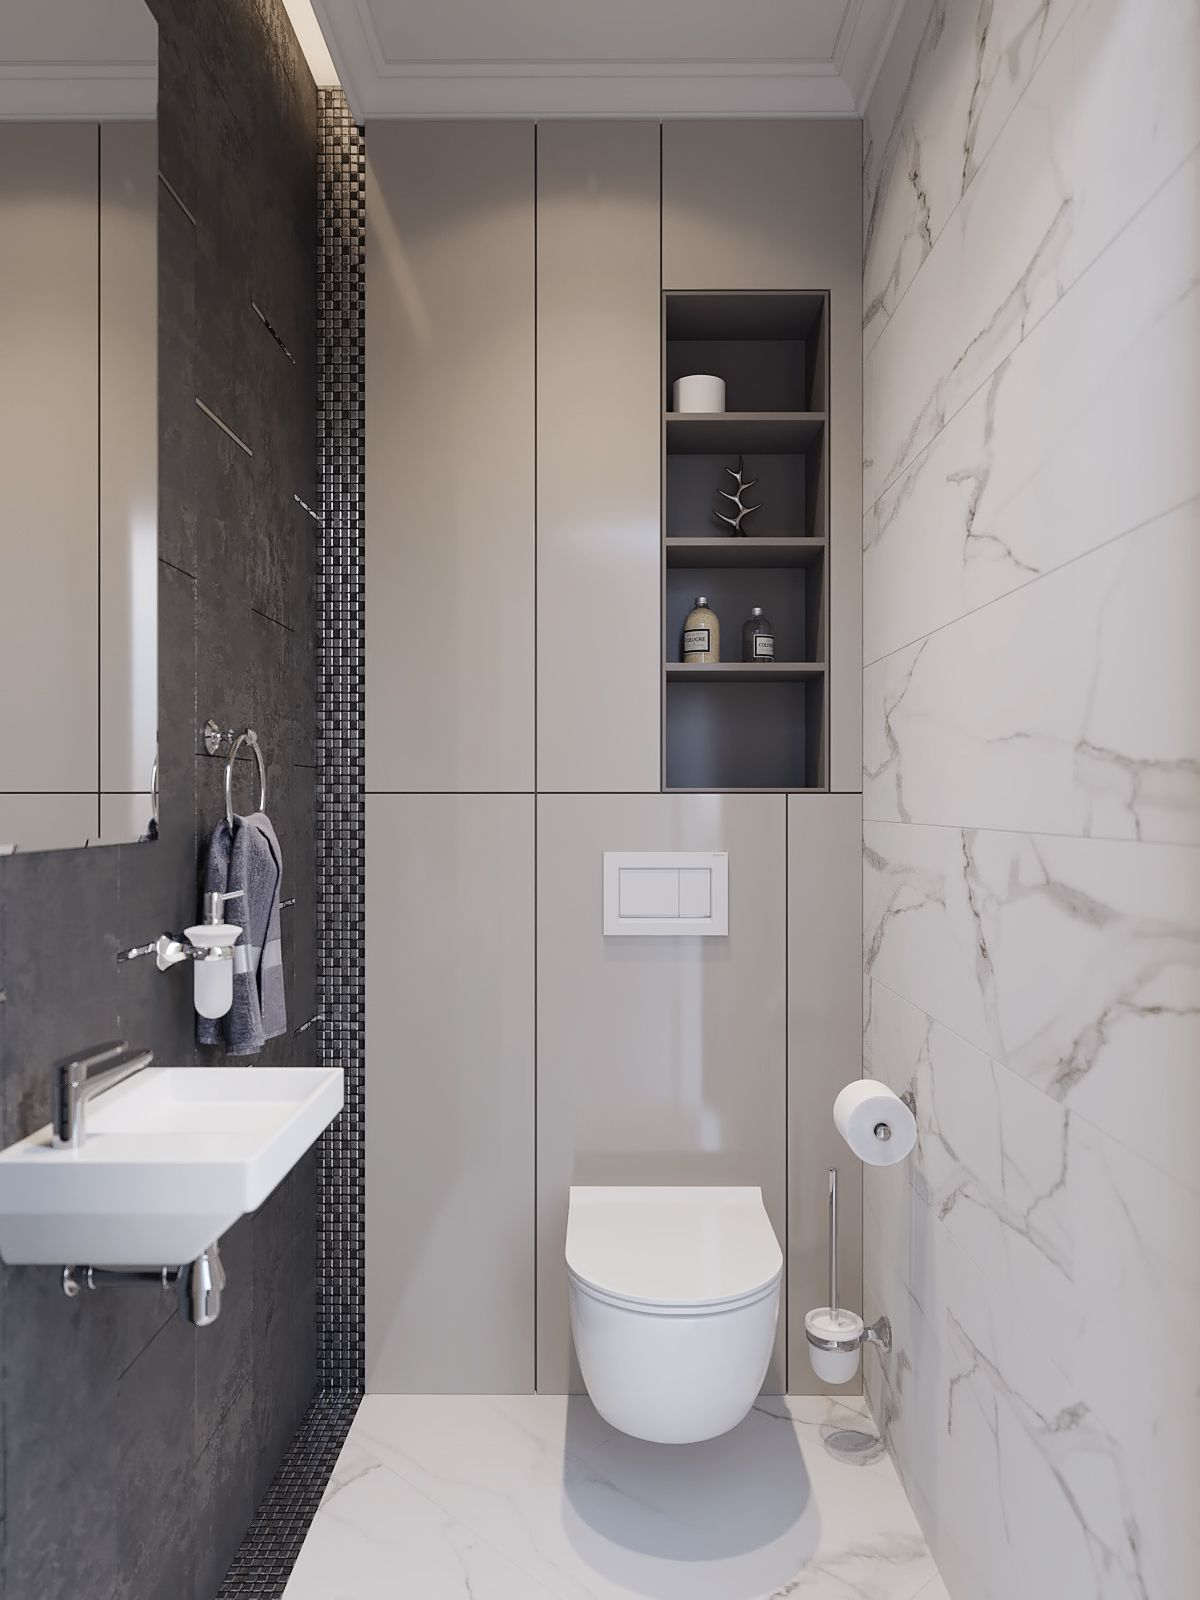 Small Bathroom With A Ton Of Hidden Back Wall Storage Minimal And Contemporary New Project By Z E T W I X